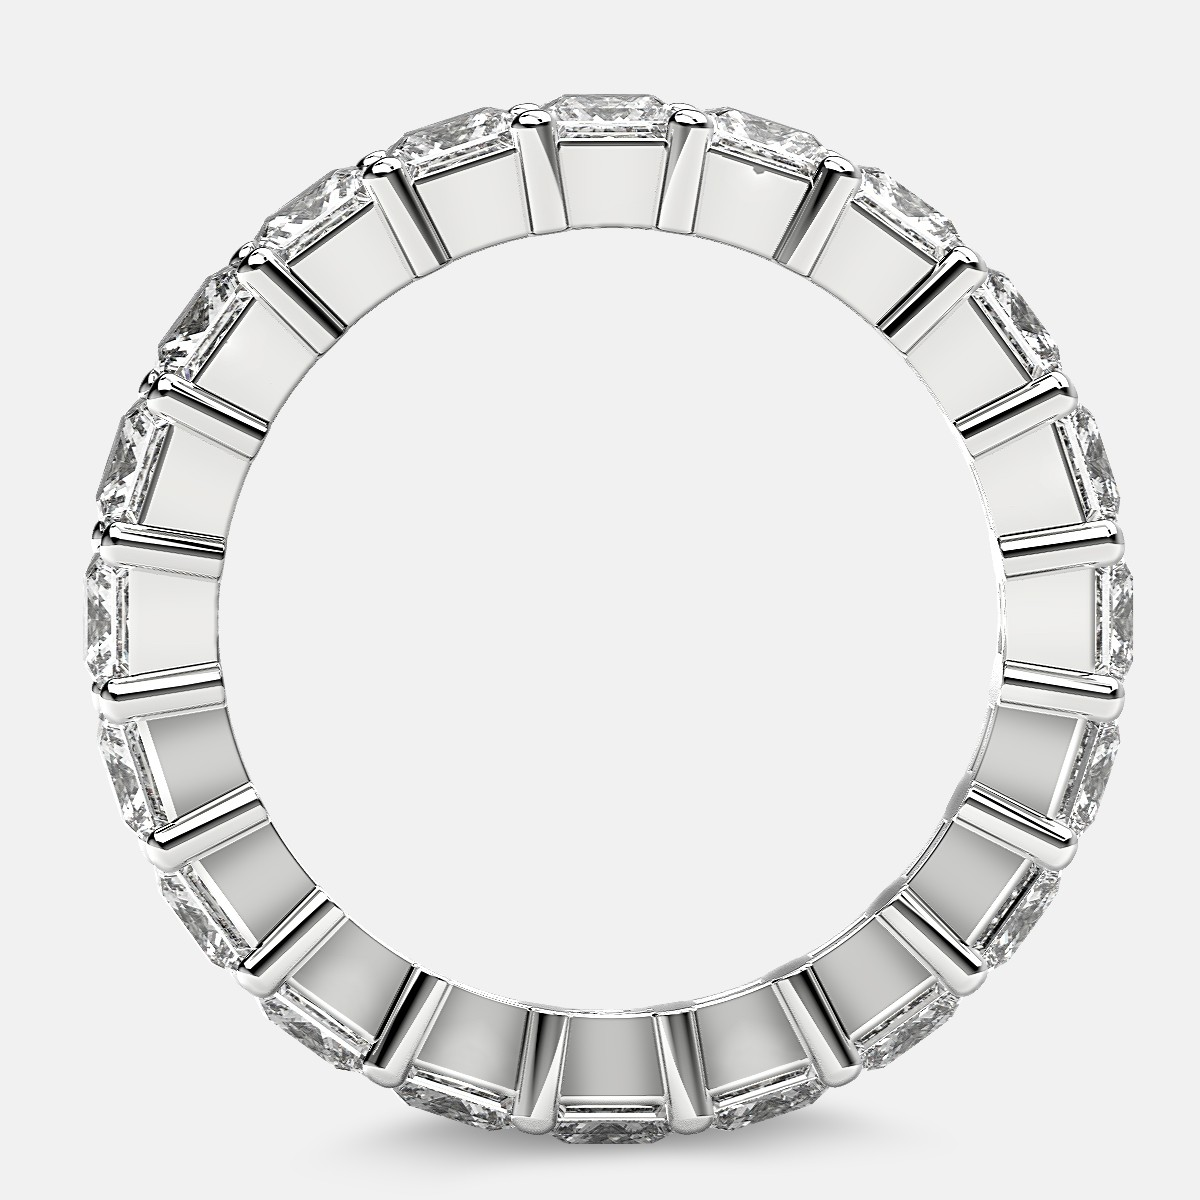 Classic Eternity Ring with Princess Cut Diamonds in Platinum